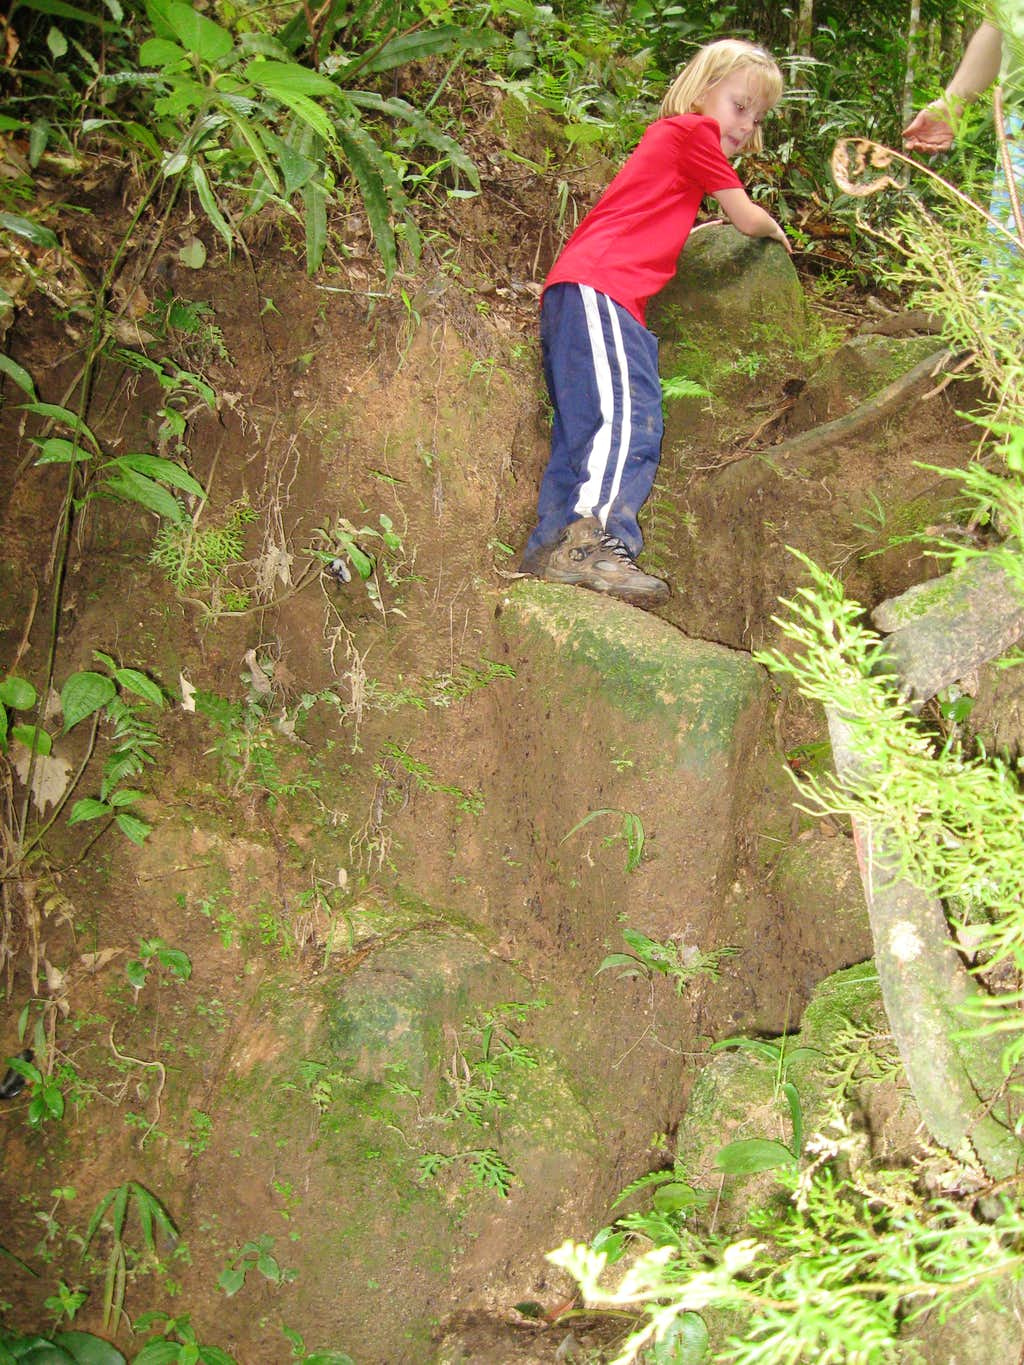 Steep and slippery route